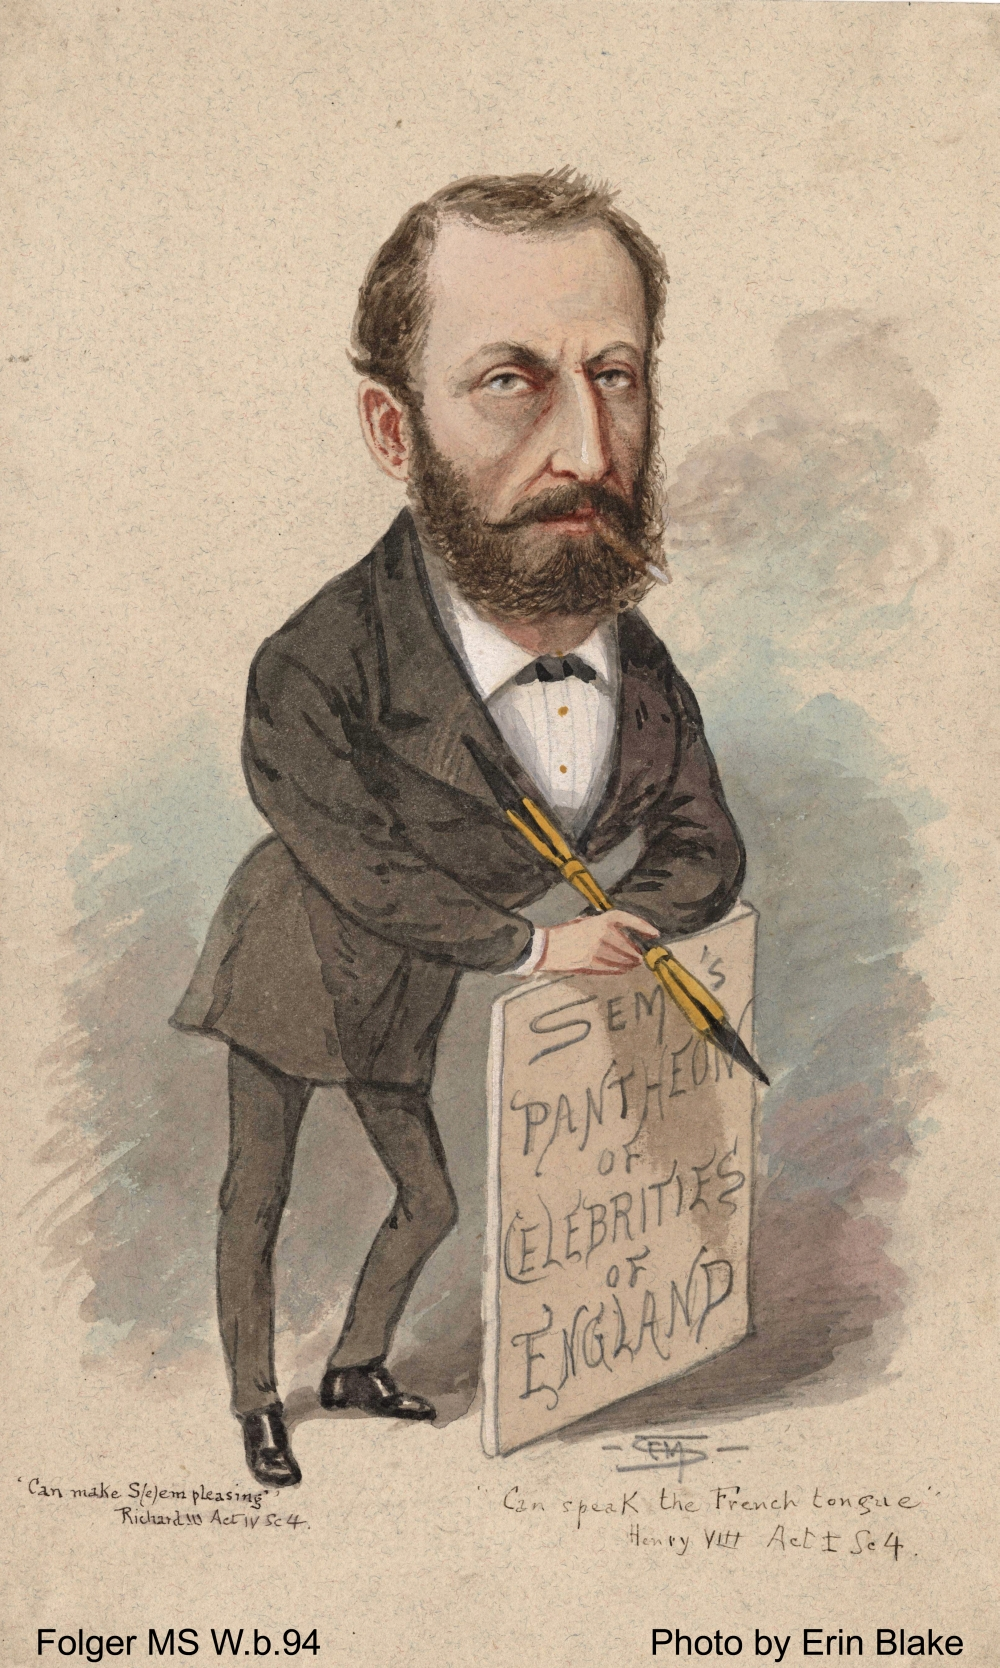 Sympathetic caricature of a bearded man, smoking, holding an oversize artist's pencil